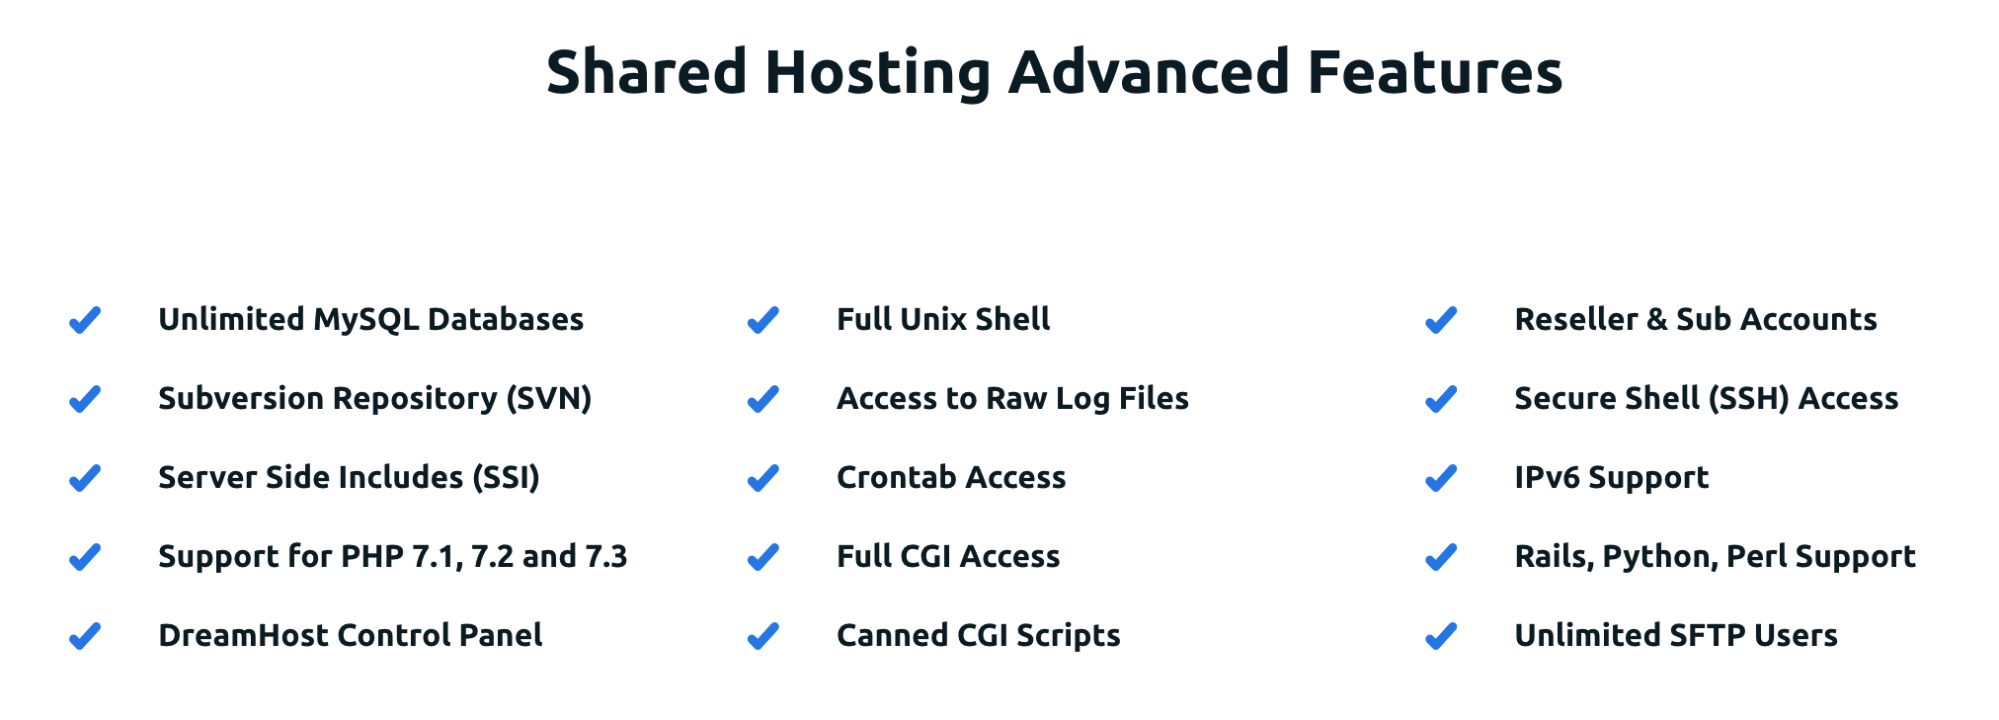 DreamHost Shared Hosting